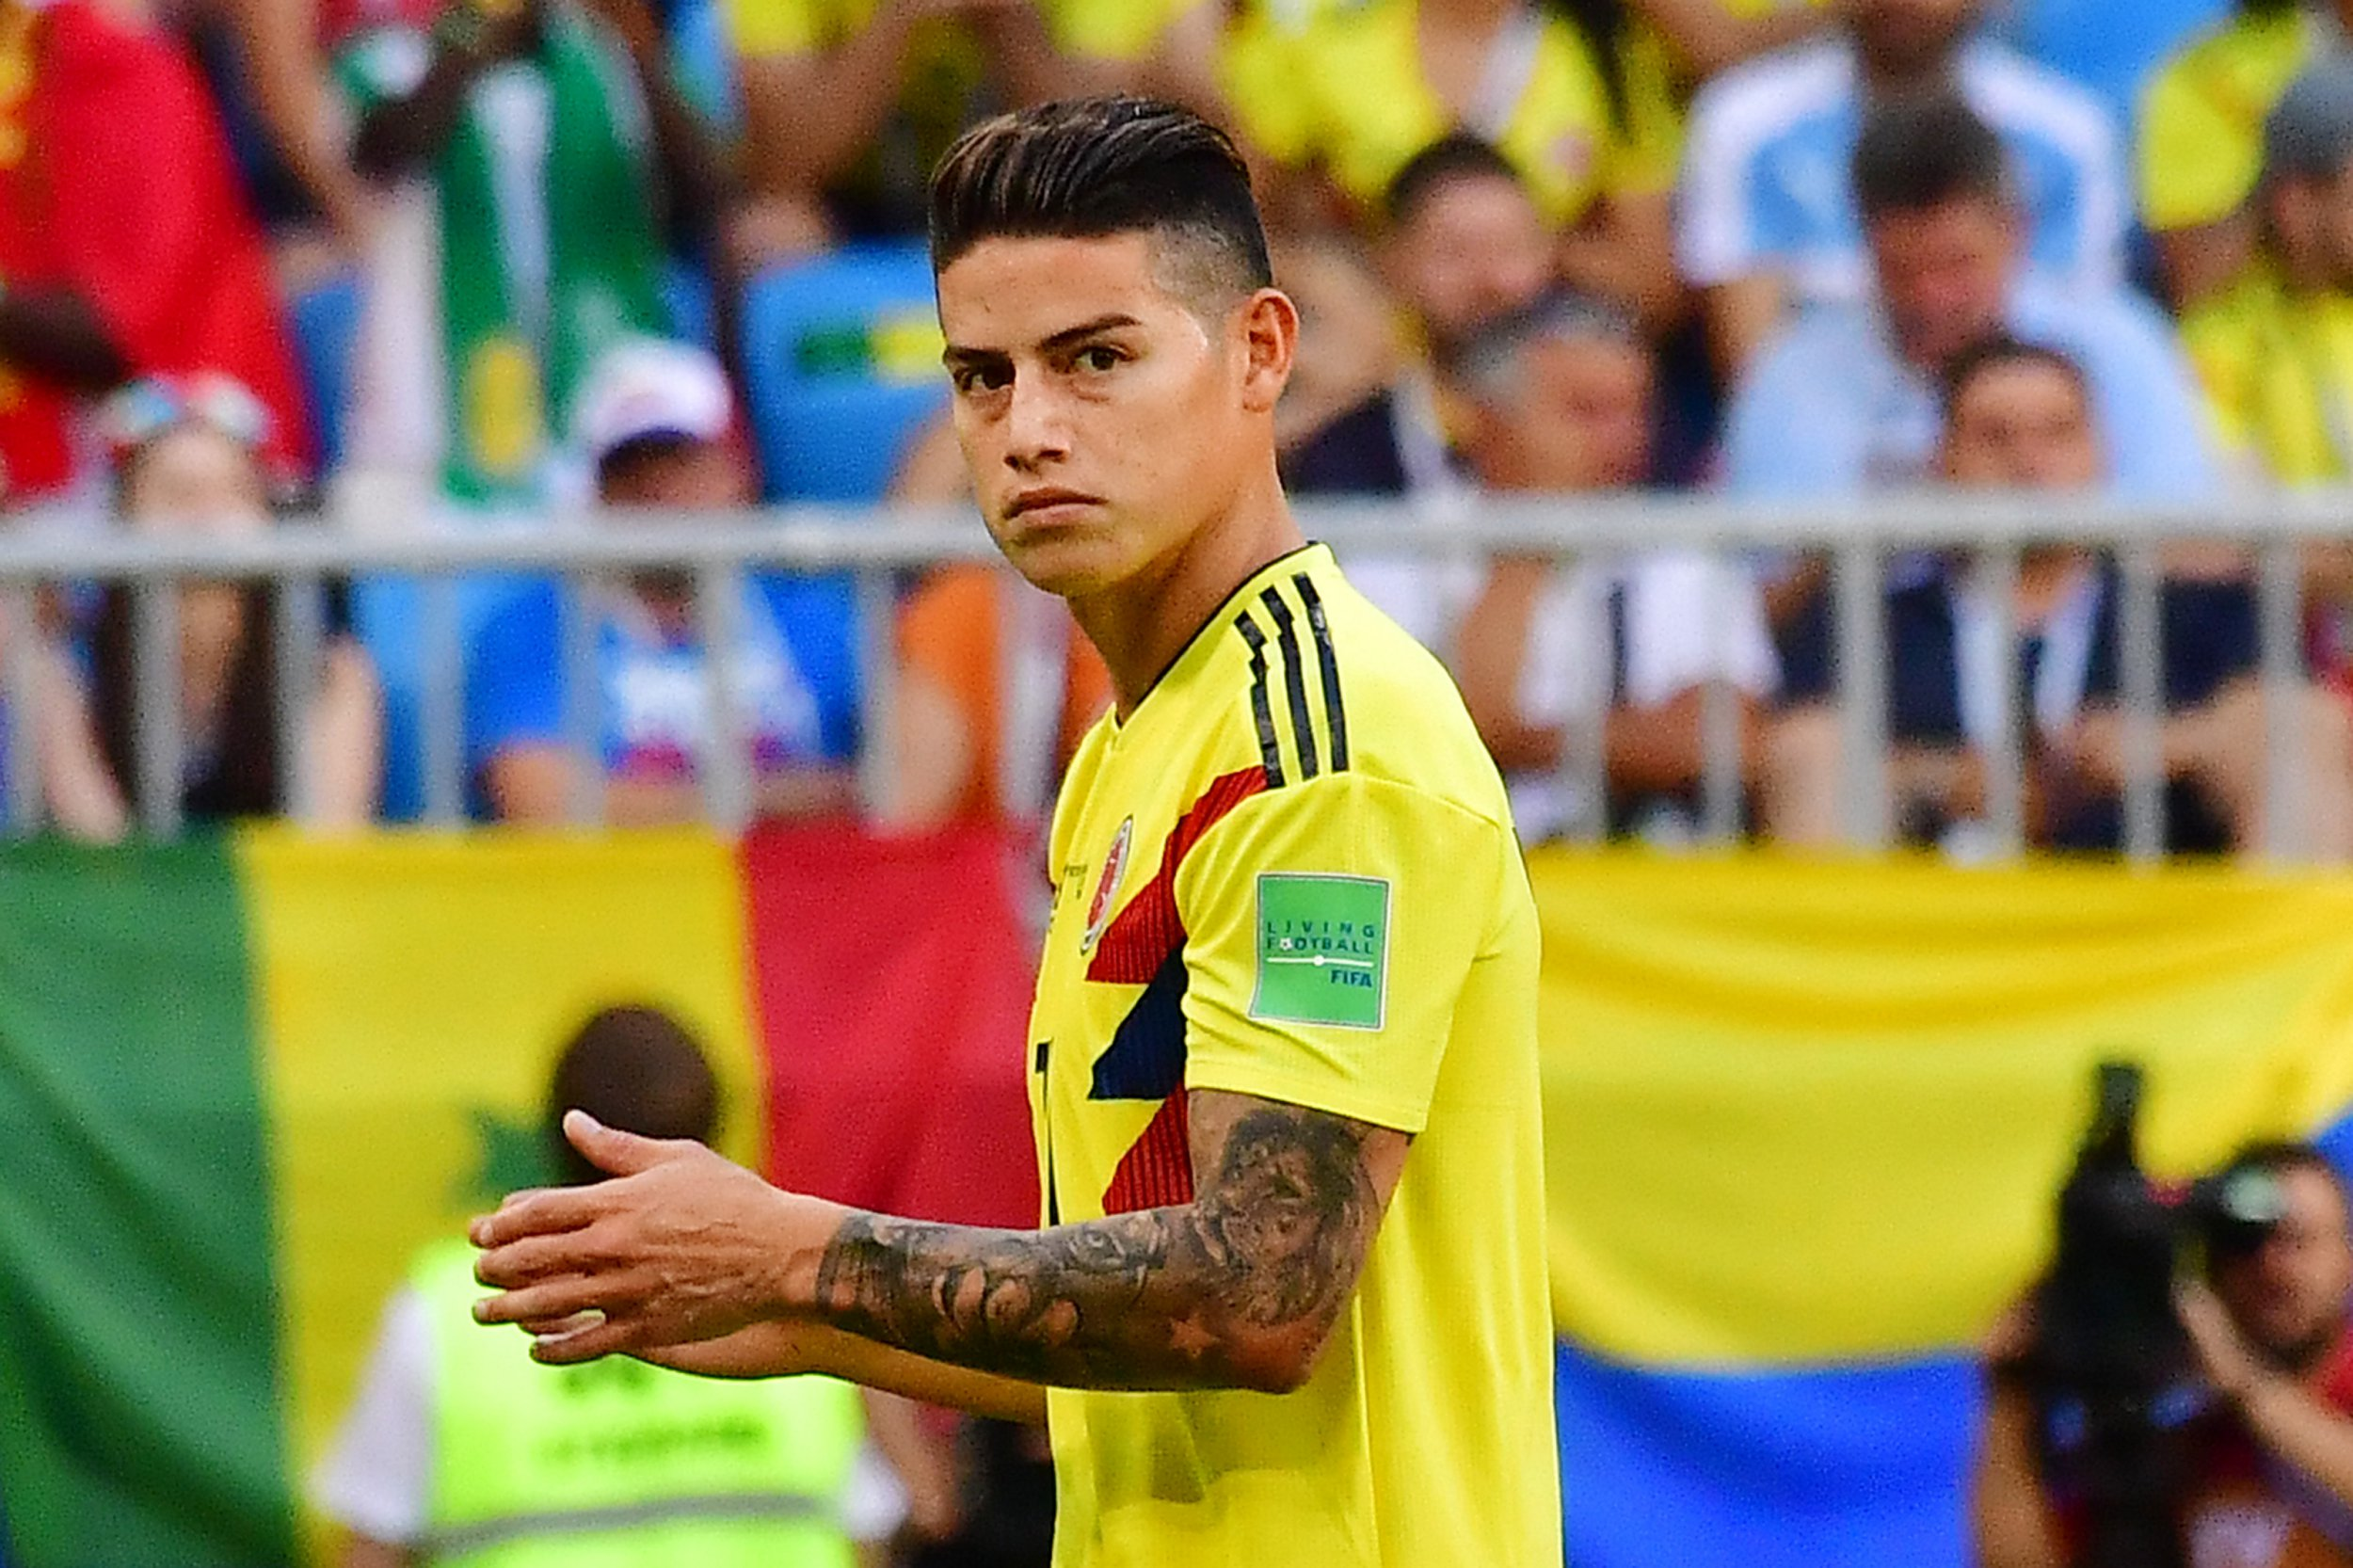 Colombia refuse to say if James Rodriguez will start against England after positive scan results